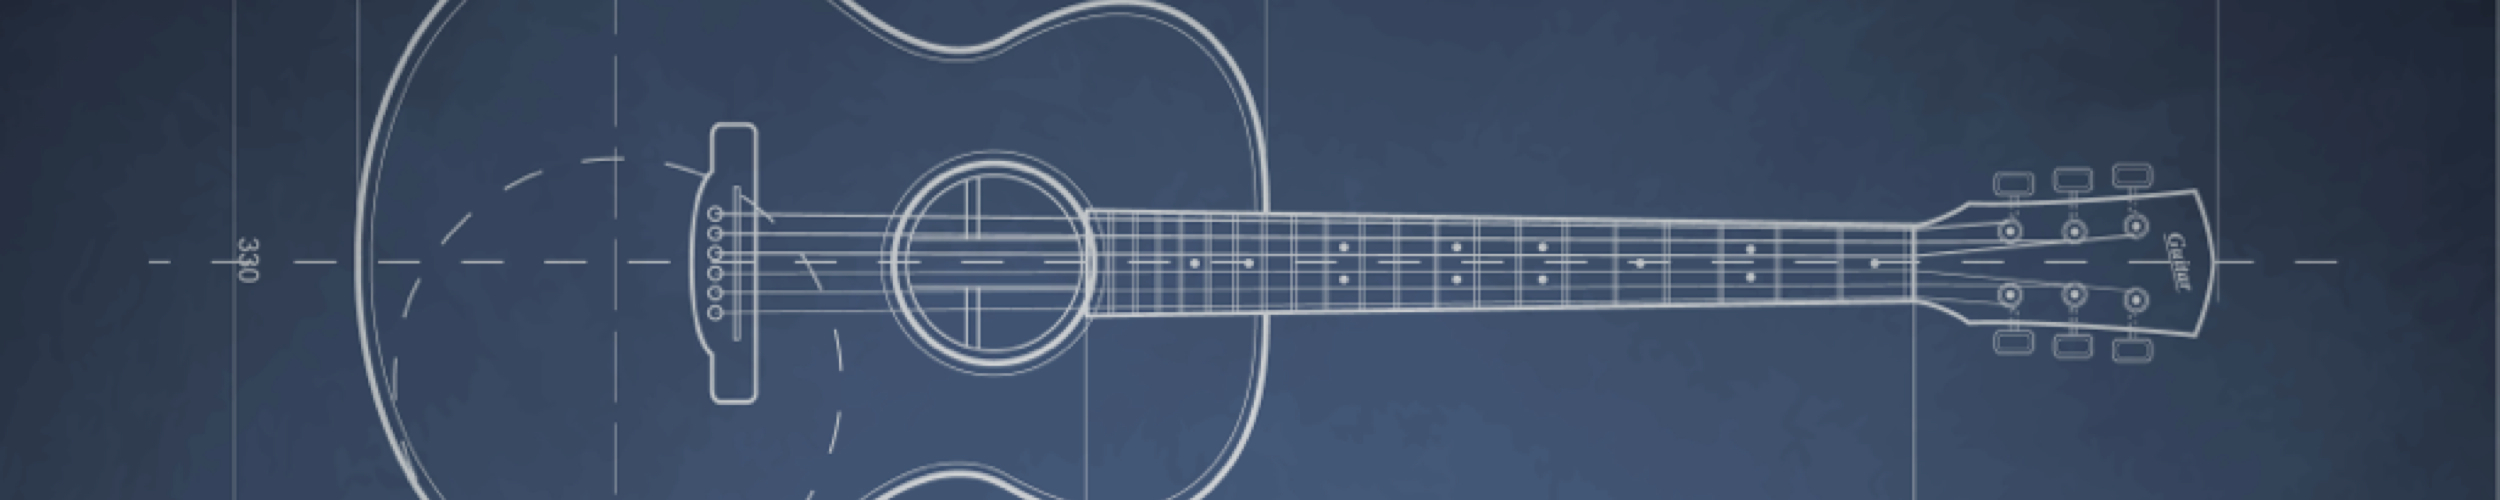 Luxury Anatomy Of Electric Guitar Ensign - Human Anatomy Images ...